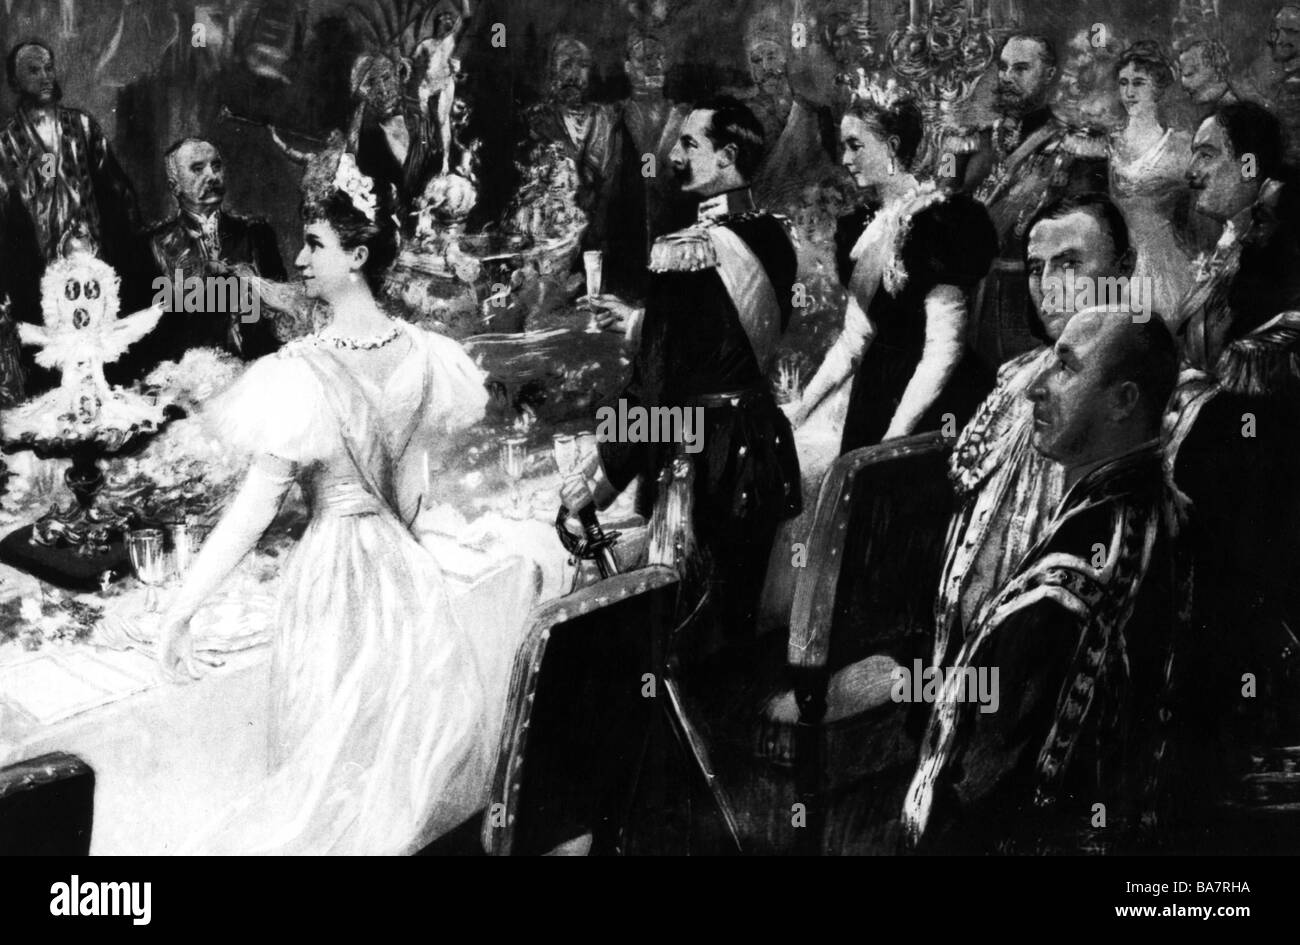 William II, 27.1.1859 - 4.6.1941, German Emperor 15.6.1888 - 9.11.1918, banquet at court, New Year's Eve 1899, - Stock Image